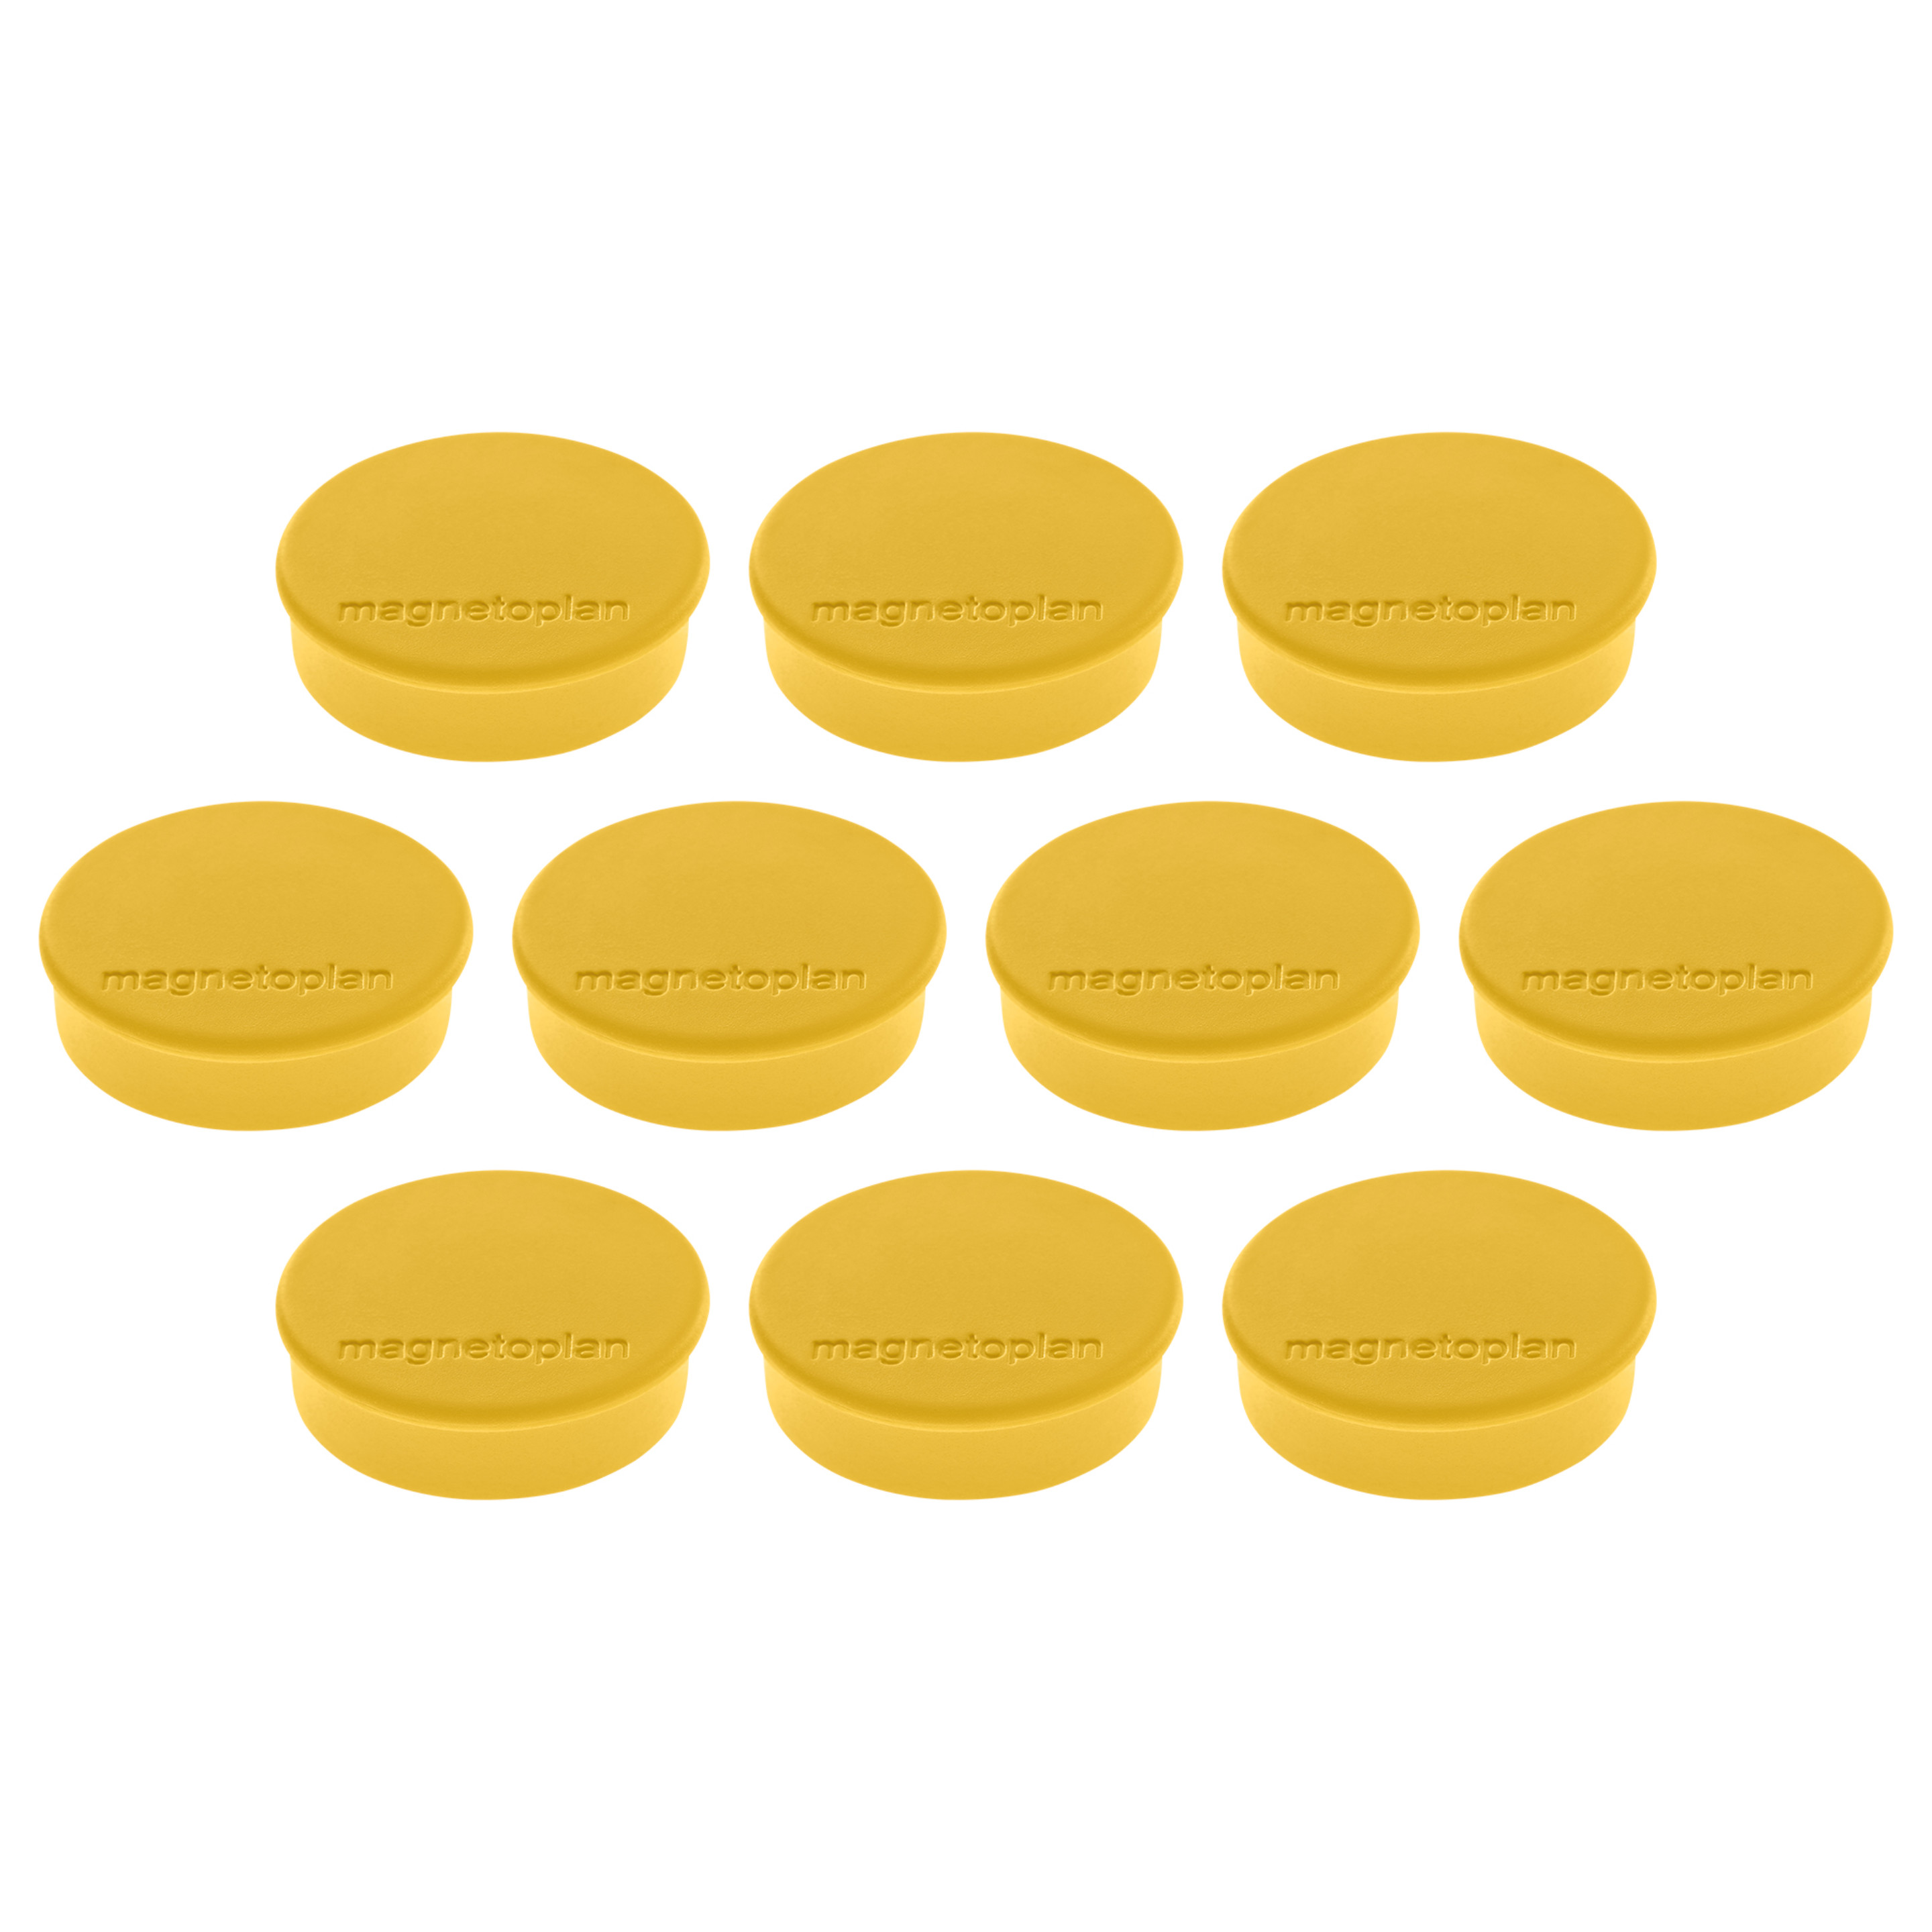 Magnetoplan Magnetic Discofix Hobby - Yellow (pkt/10pcs)